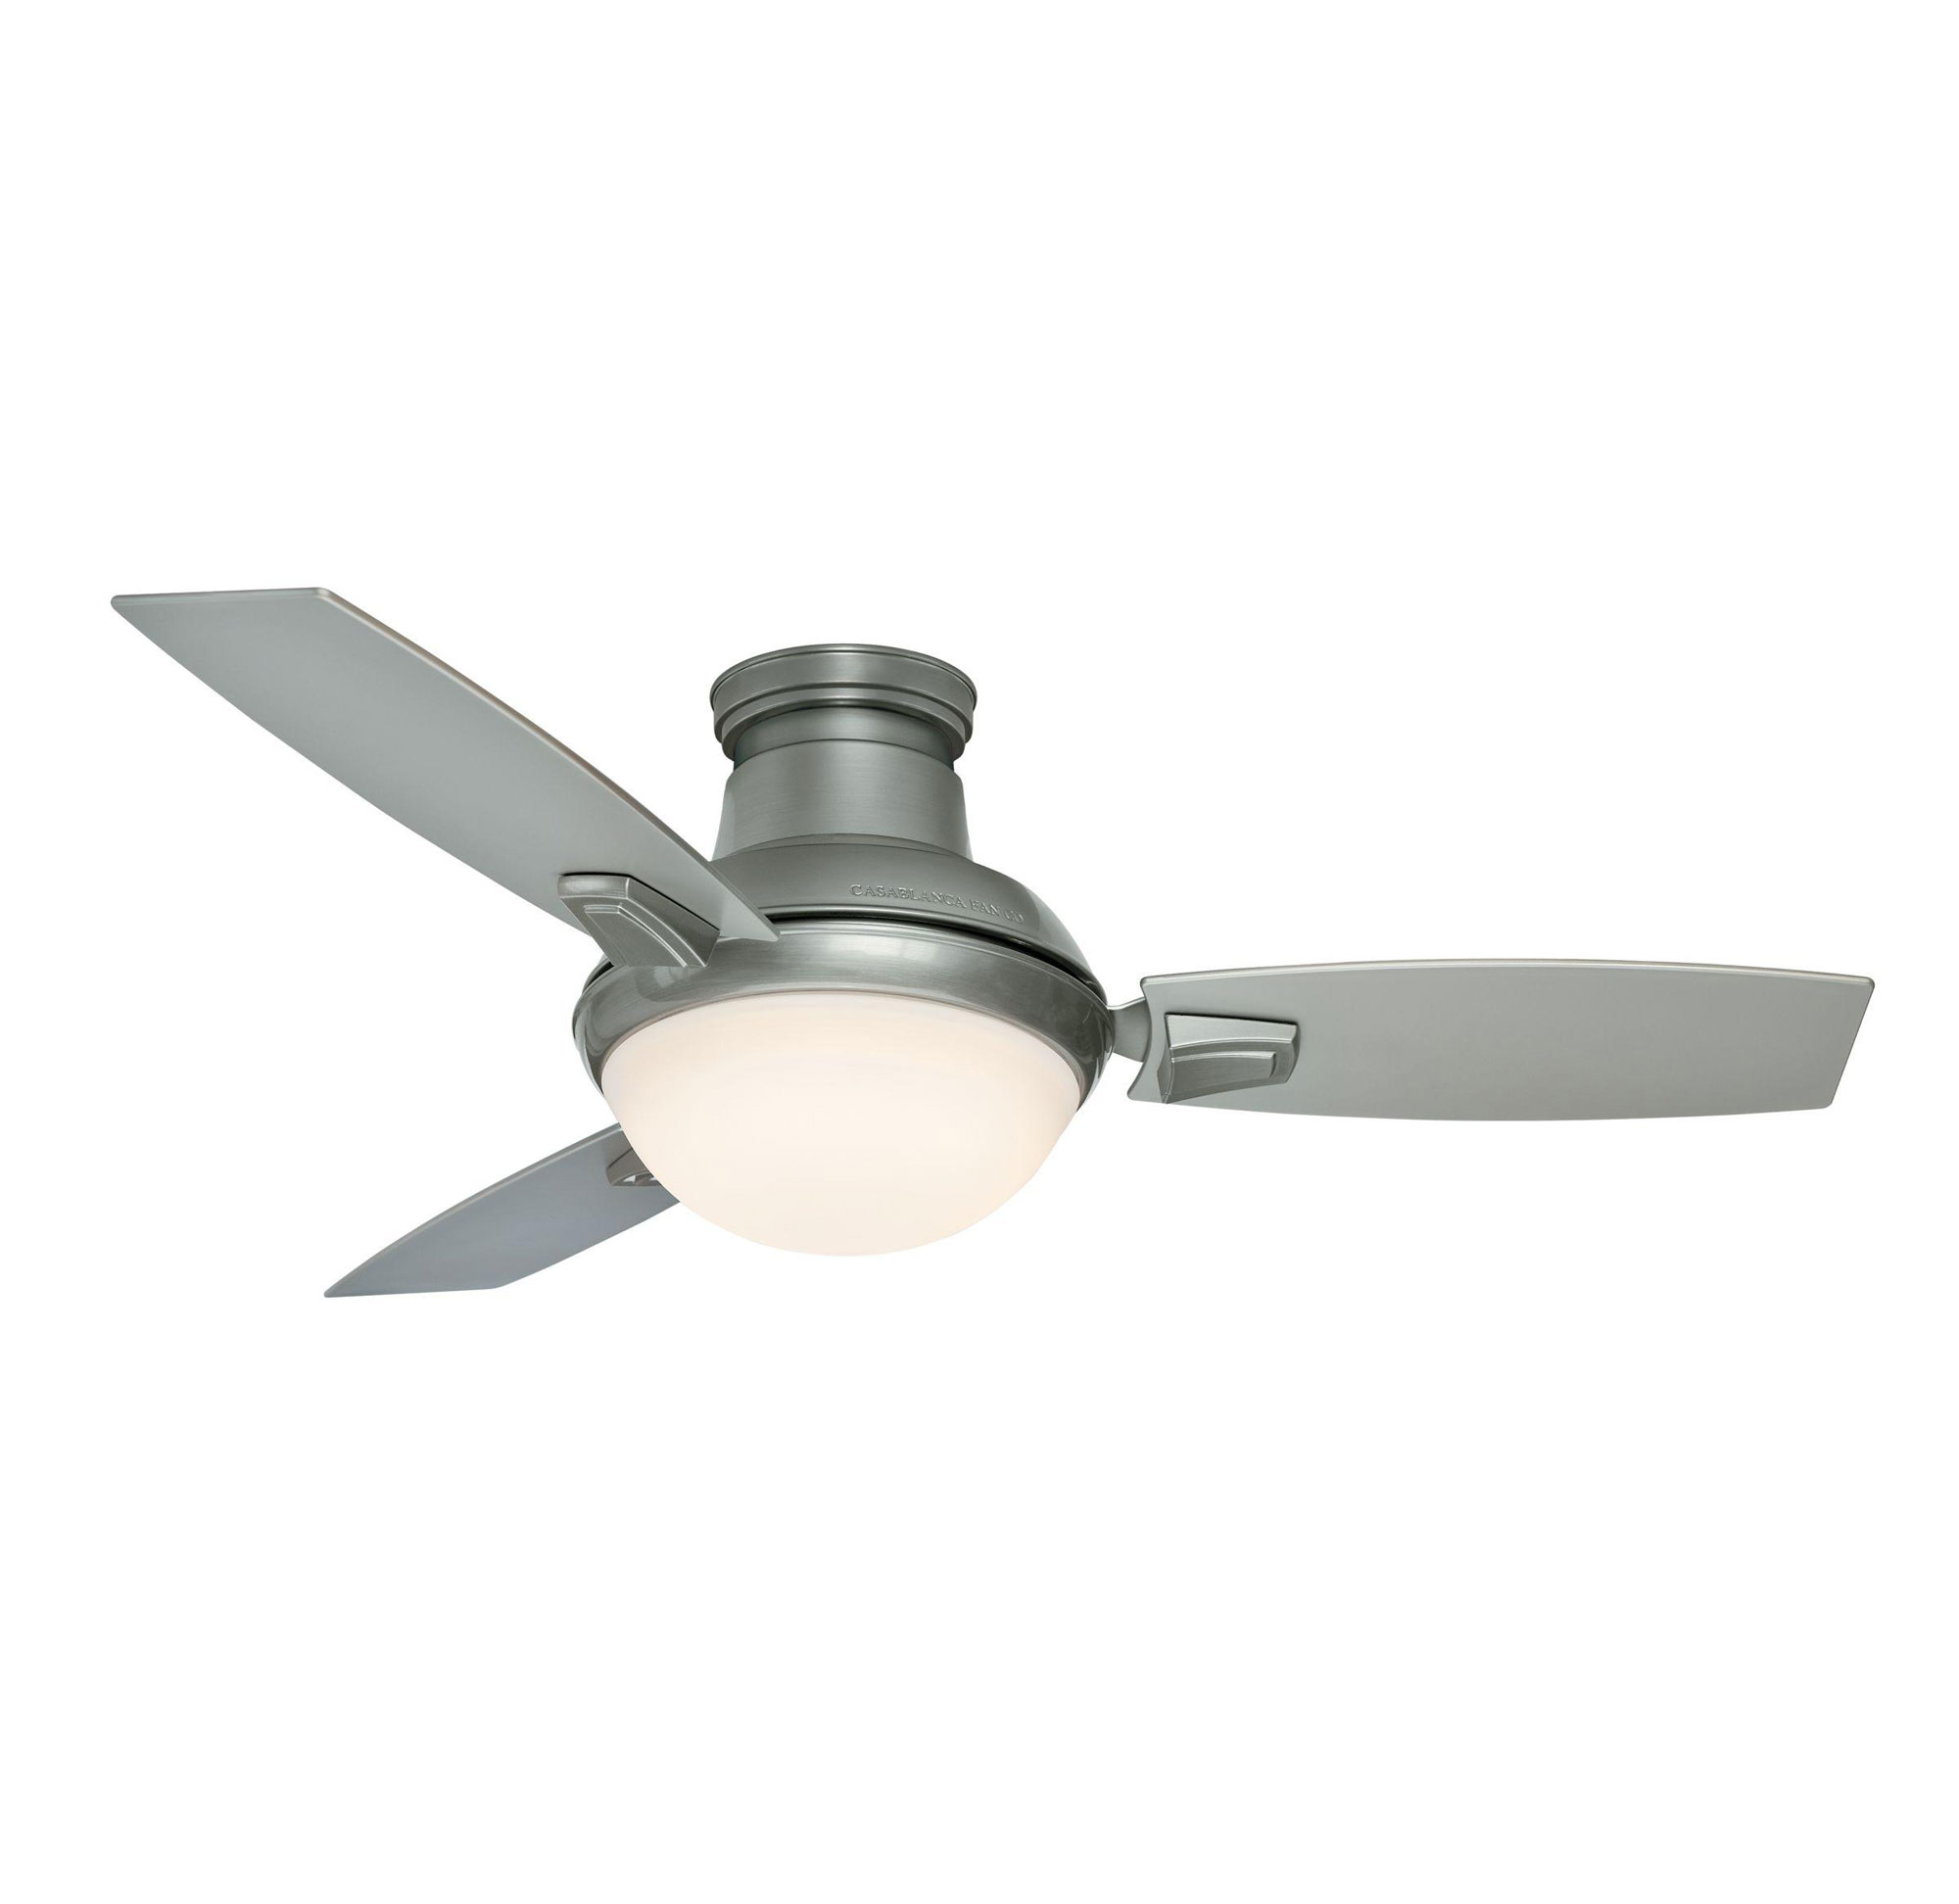 opal collection glass finish embrace white fan fanimation ceilings fans ceiling inch matte